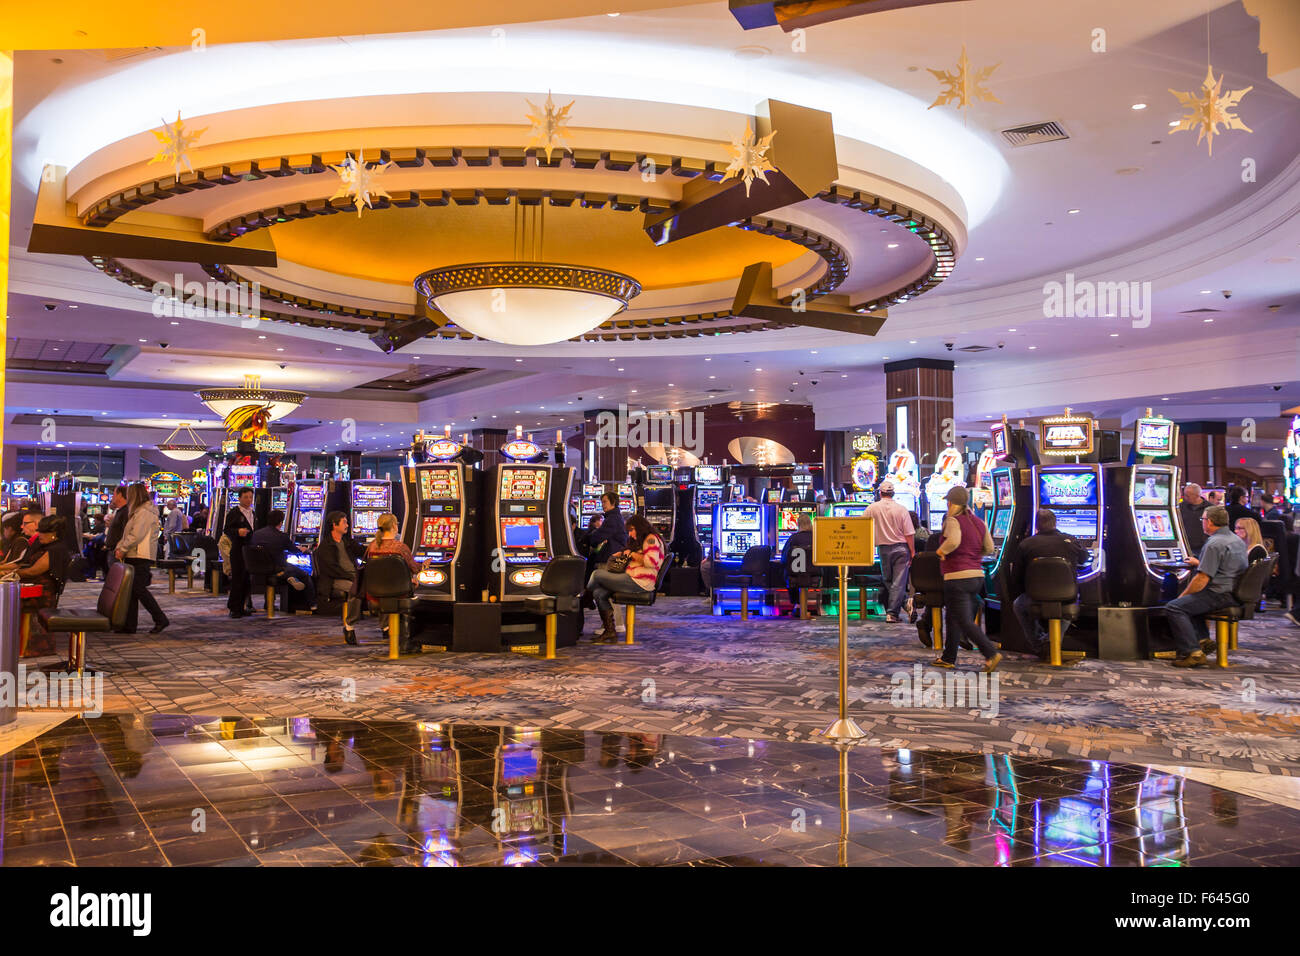 View of people gambling at slot machines at Foxwoods Casino. - Stock Image